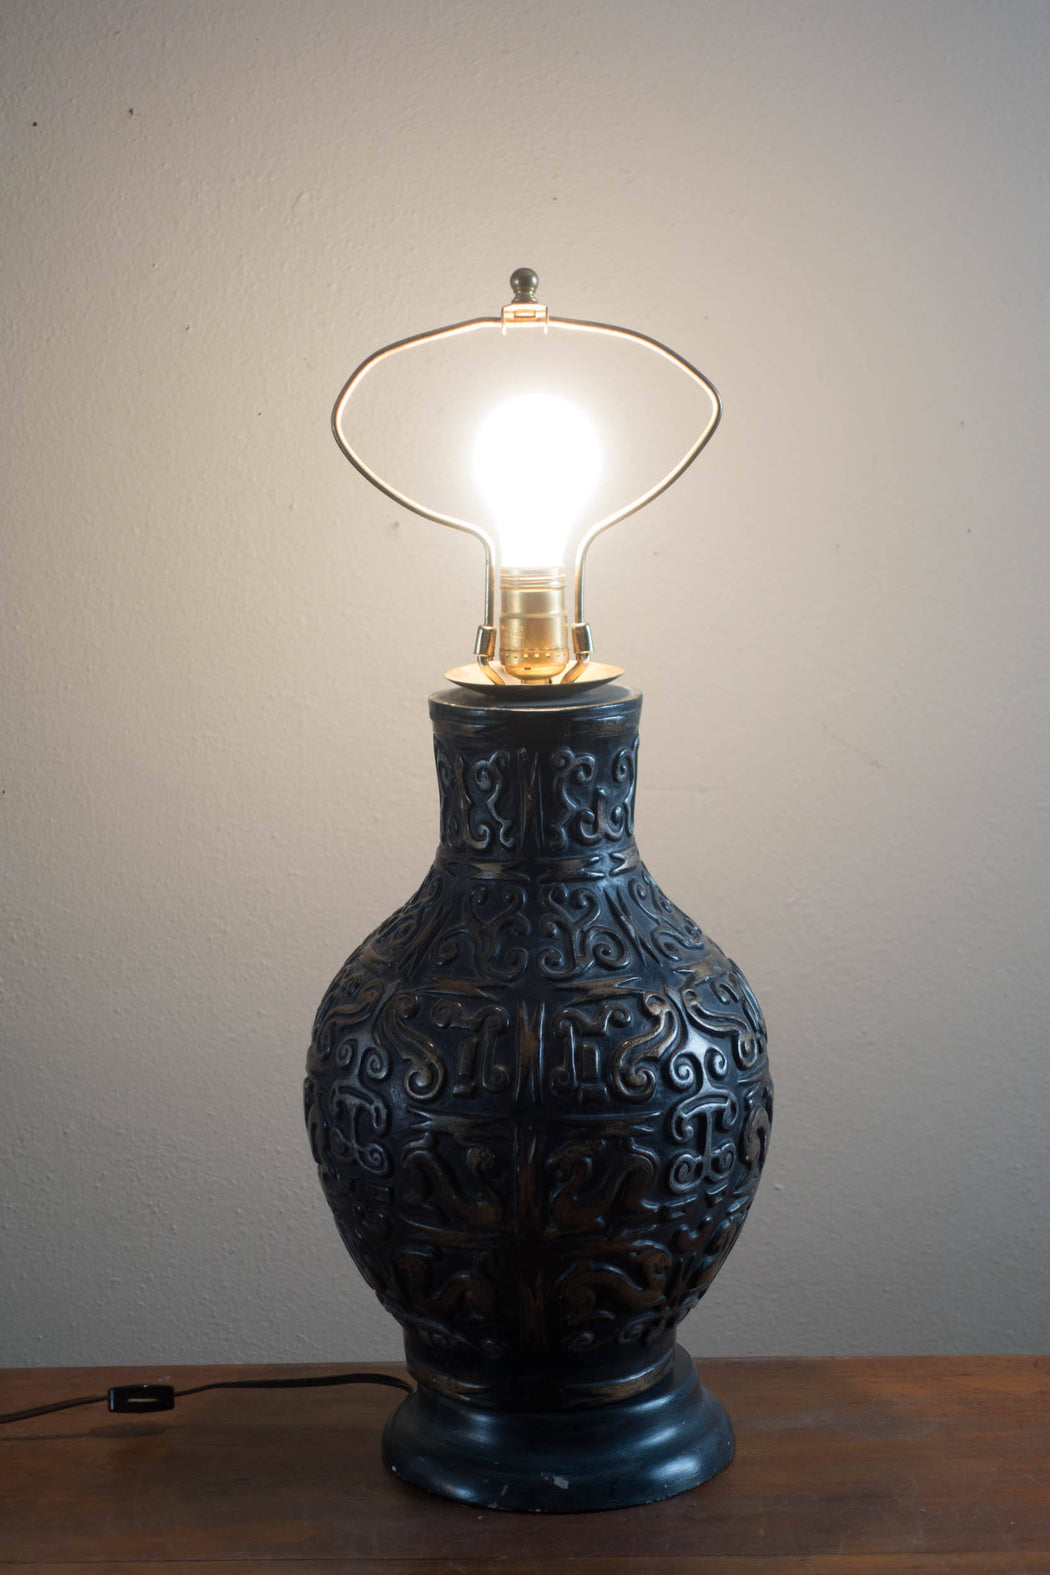 Vintage James Mont-style Ceramic Table Lamp